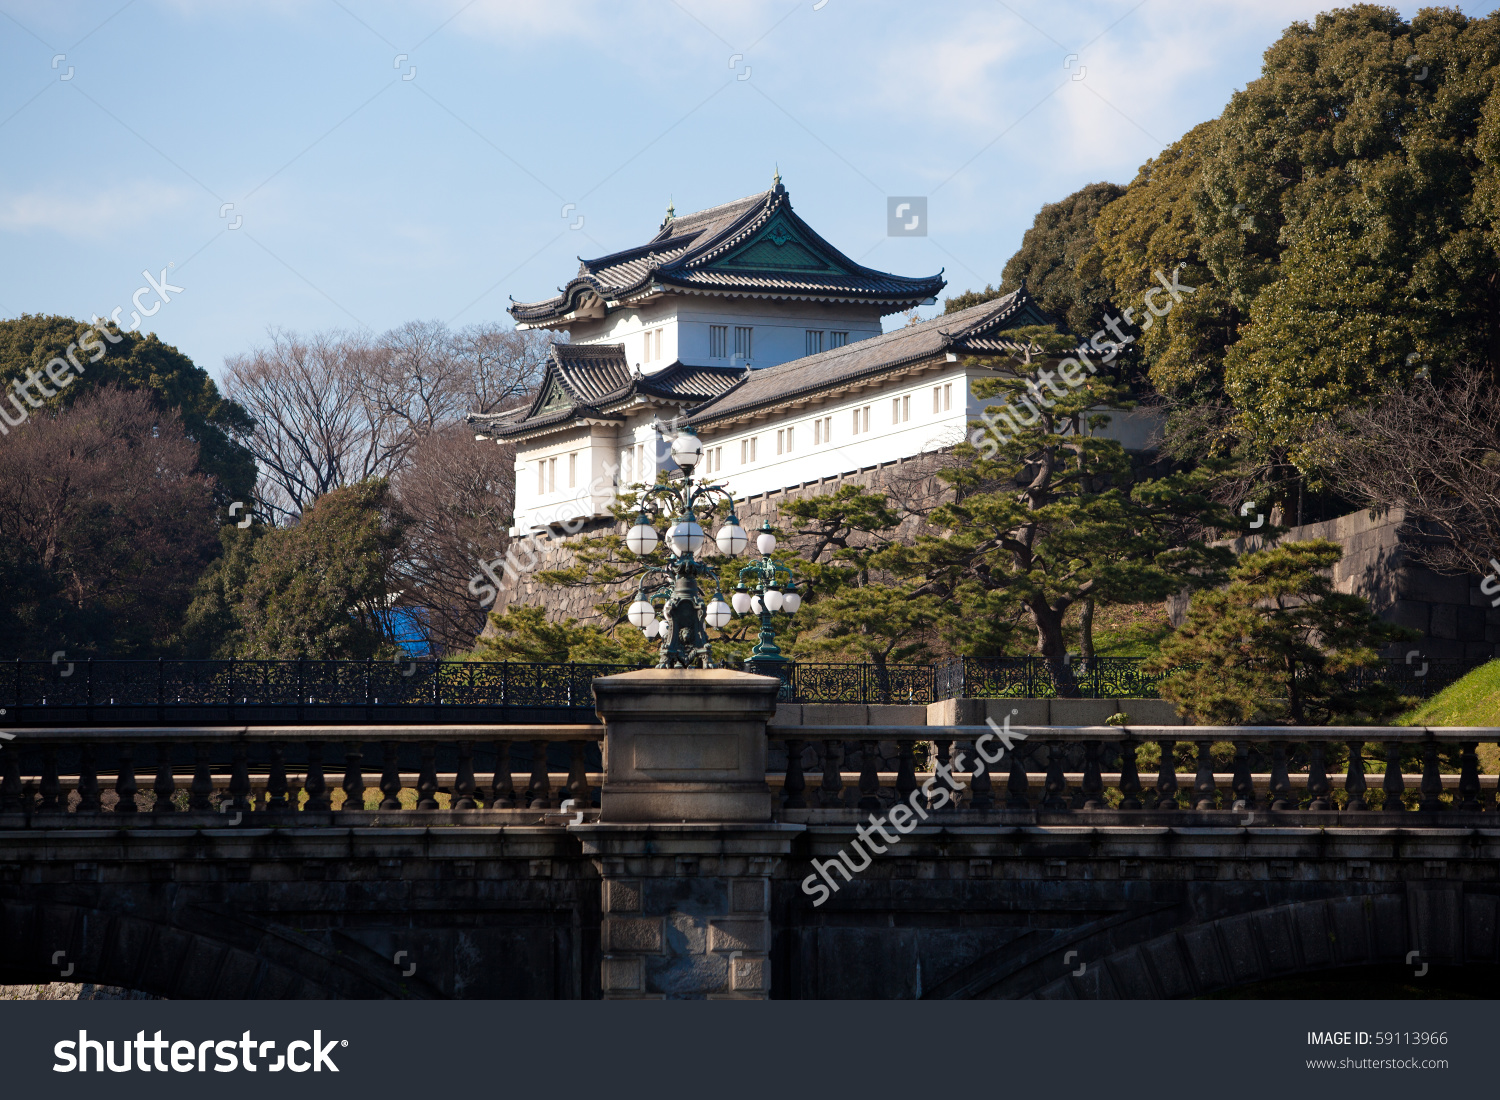 Japanese Imperial Palace Tokyo Japan Stock Photo 59113966.